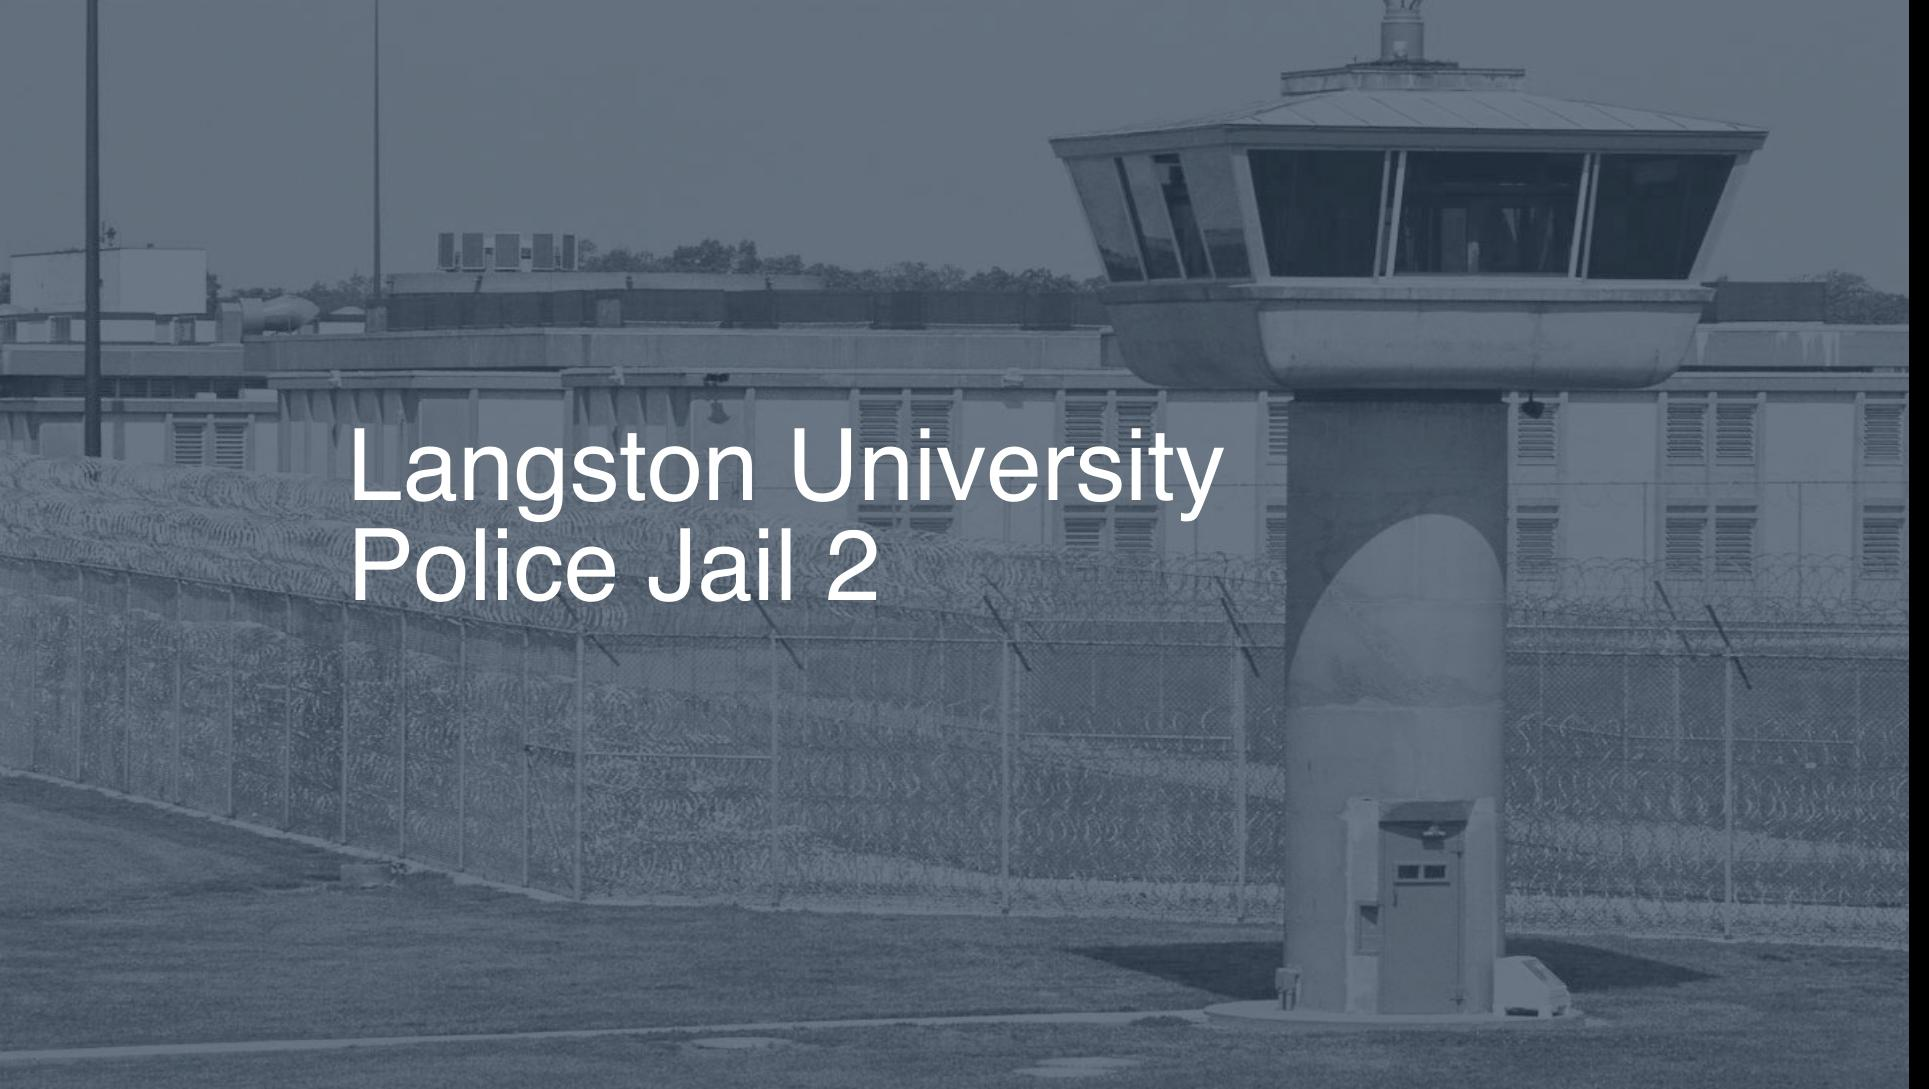 Langston University Police Jail correctional facility picture